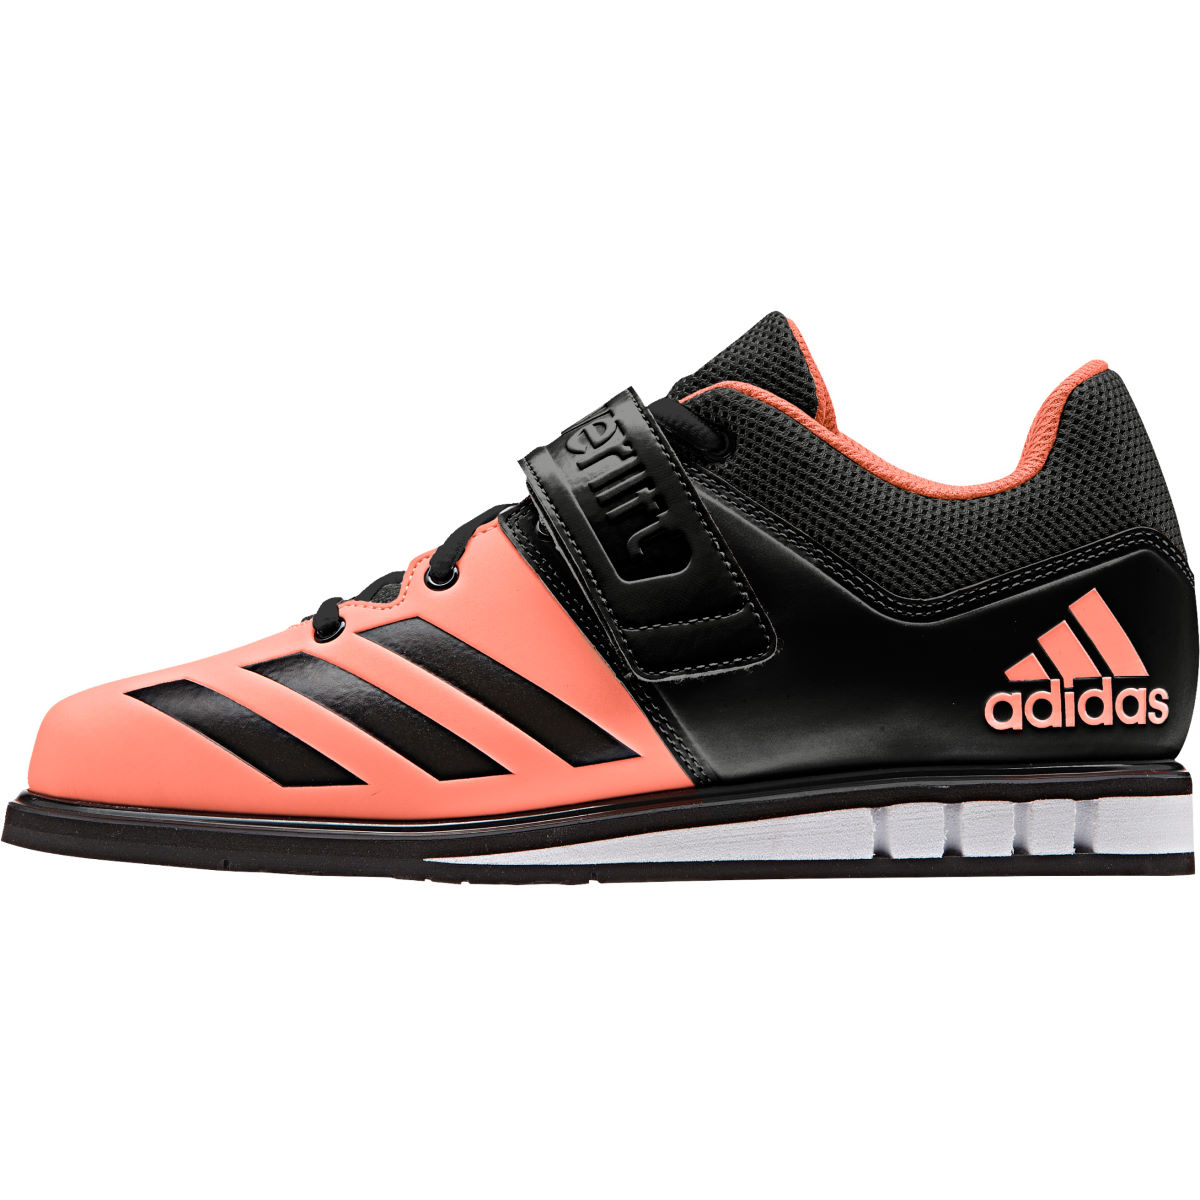 Adidas Running Shoes Online Usa